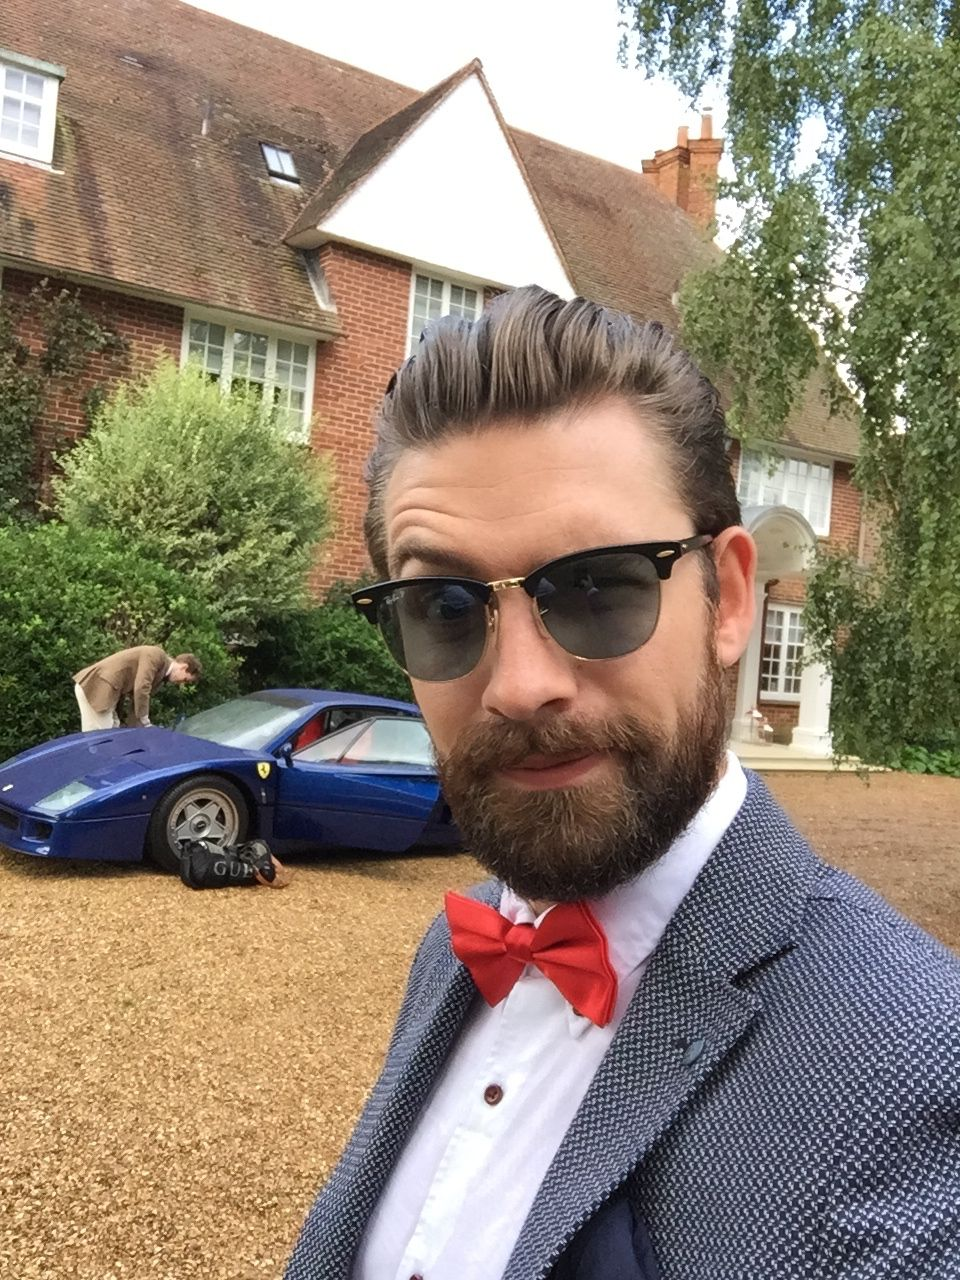 What sunglasses does Mr JWW wear? - Image result for Mr JWW wears aviators